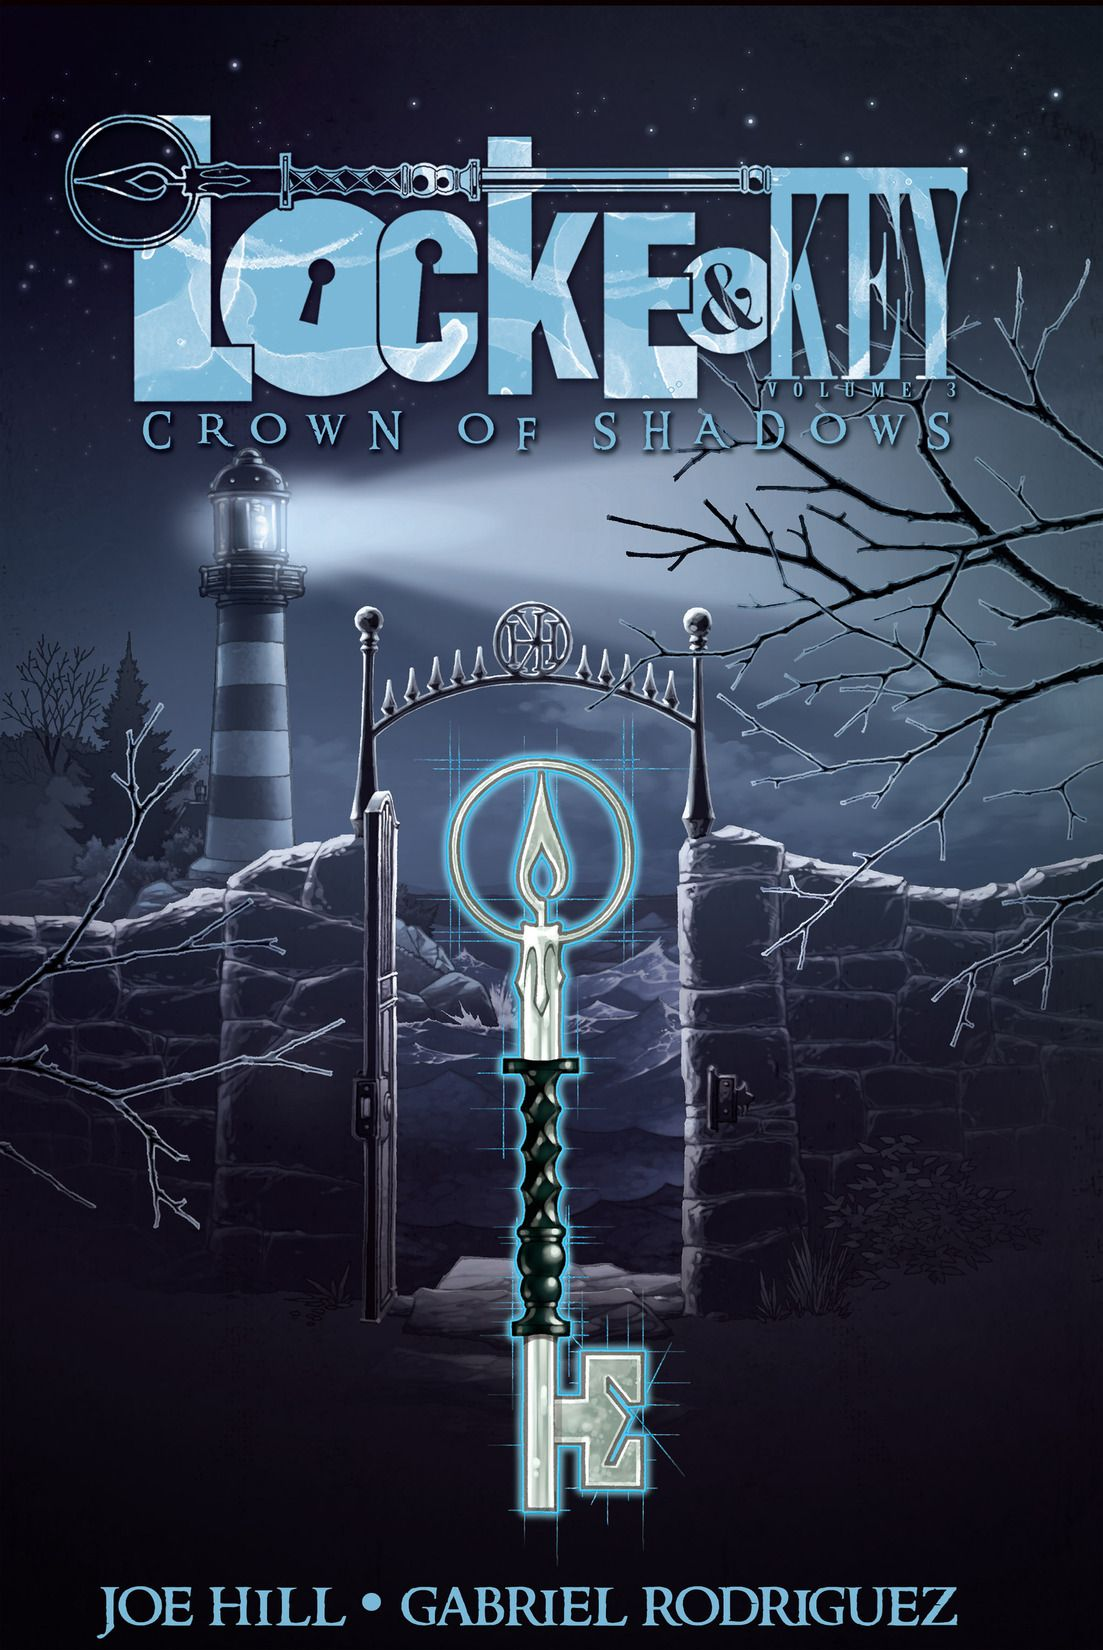 locke&key vol 3: crown of shadows is written by Joe Hill, and the art is by Gabriel Rodriguez